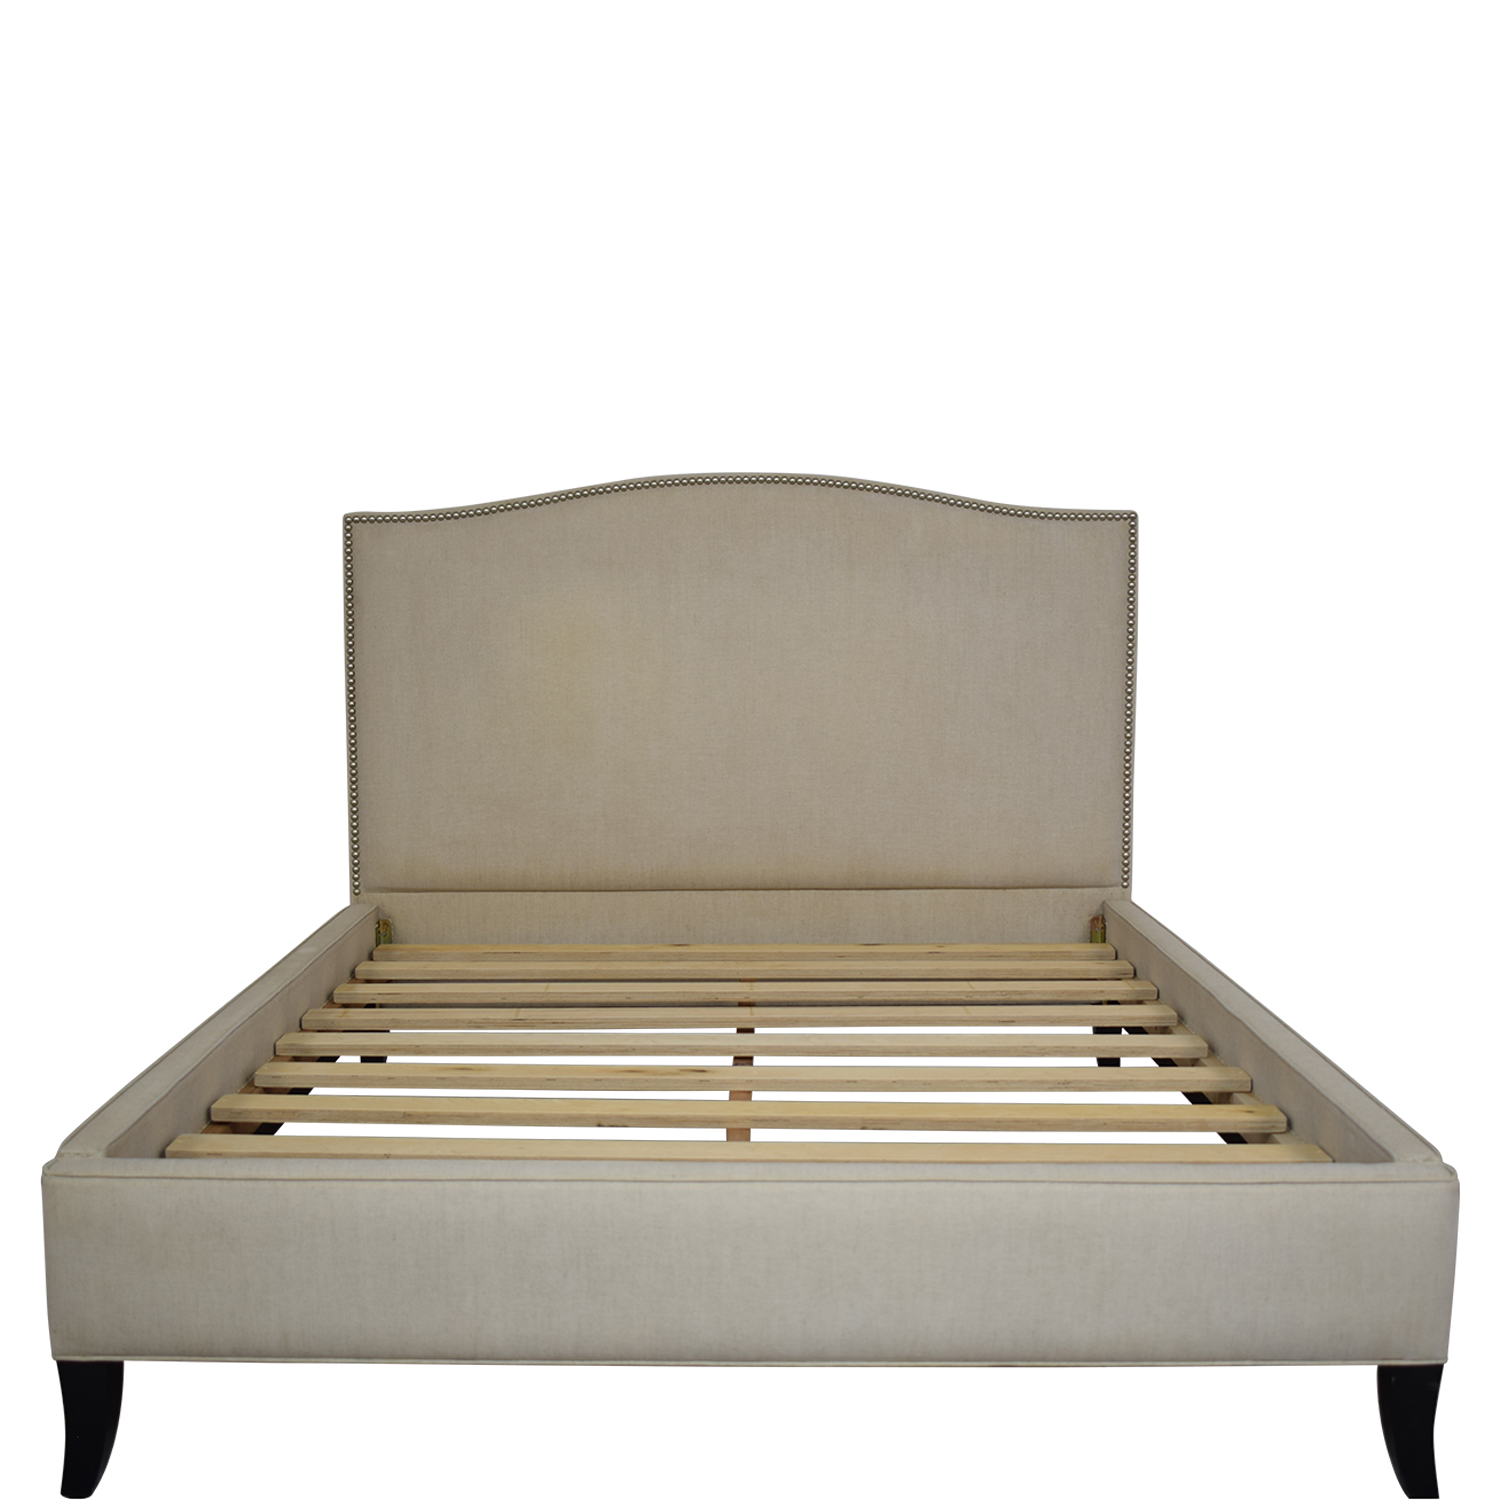 shop Crate & Barrel Colette Queen Upholstered Bed Crate & Barrel Beds